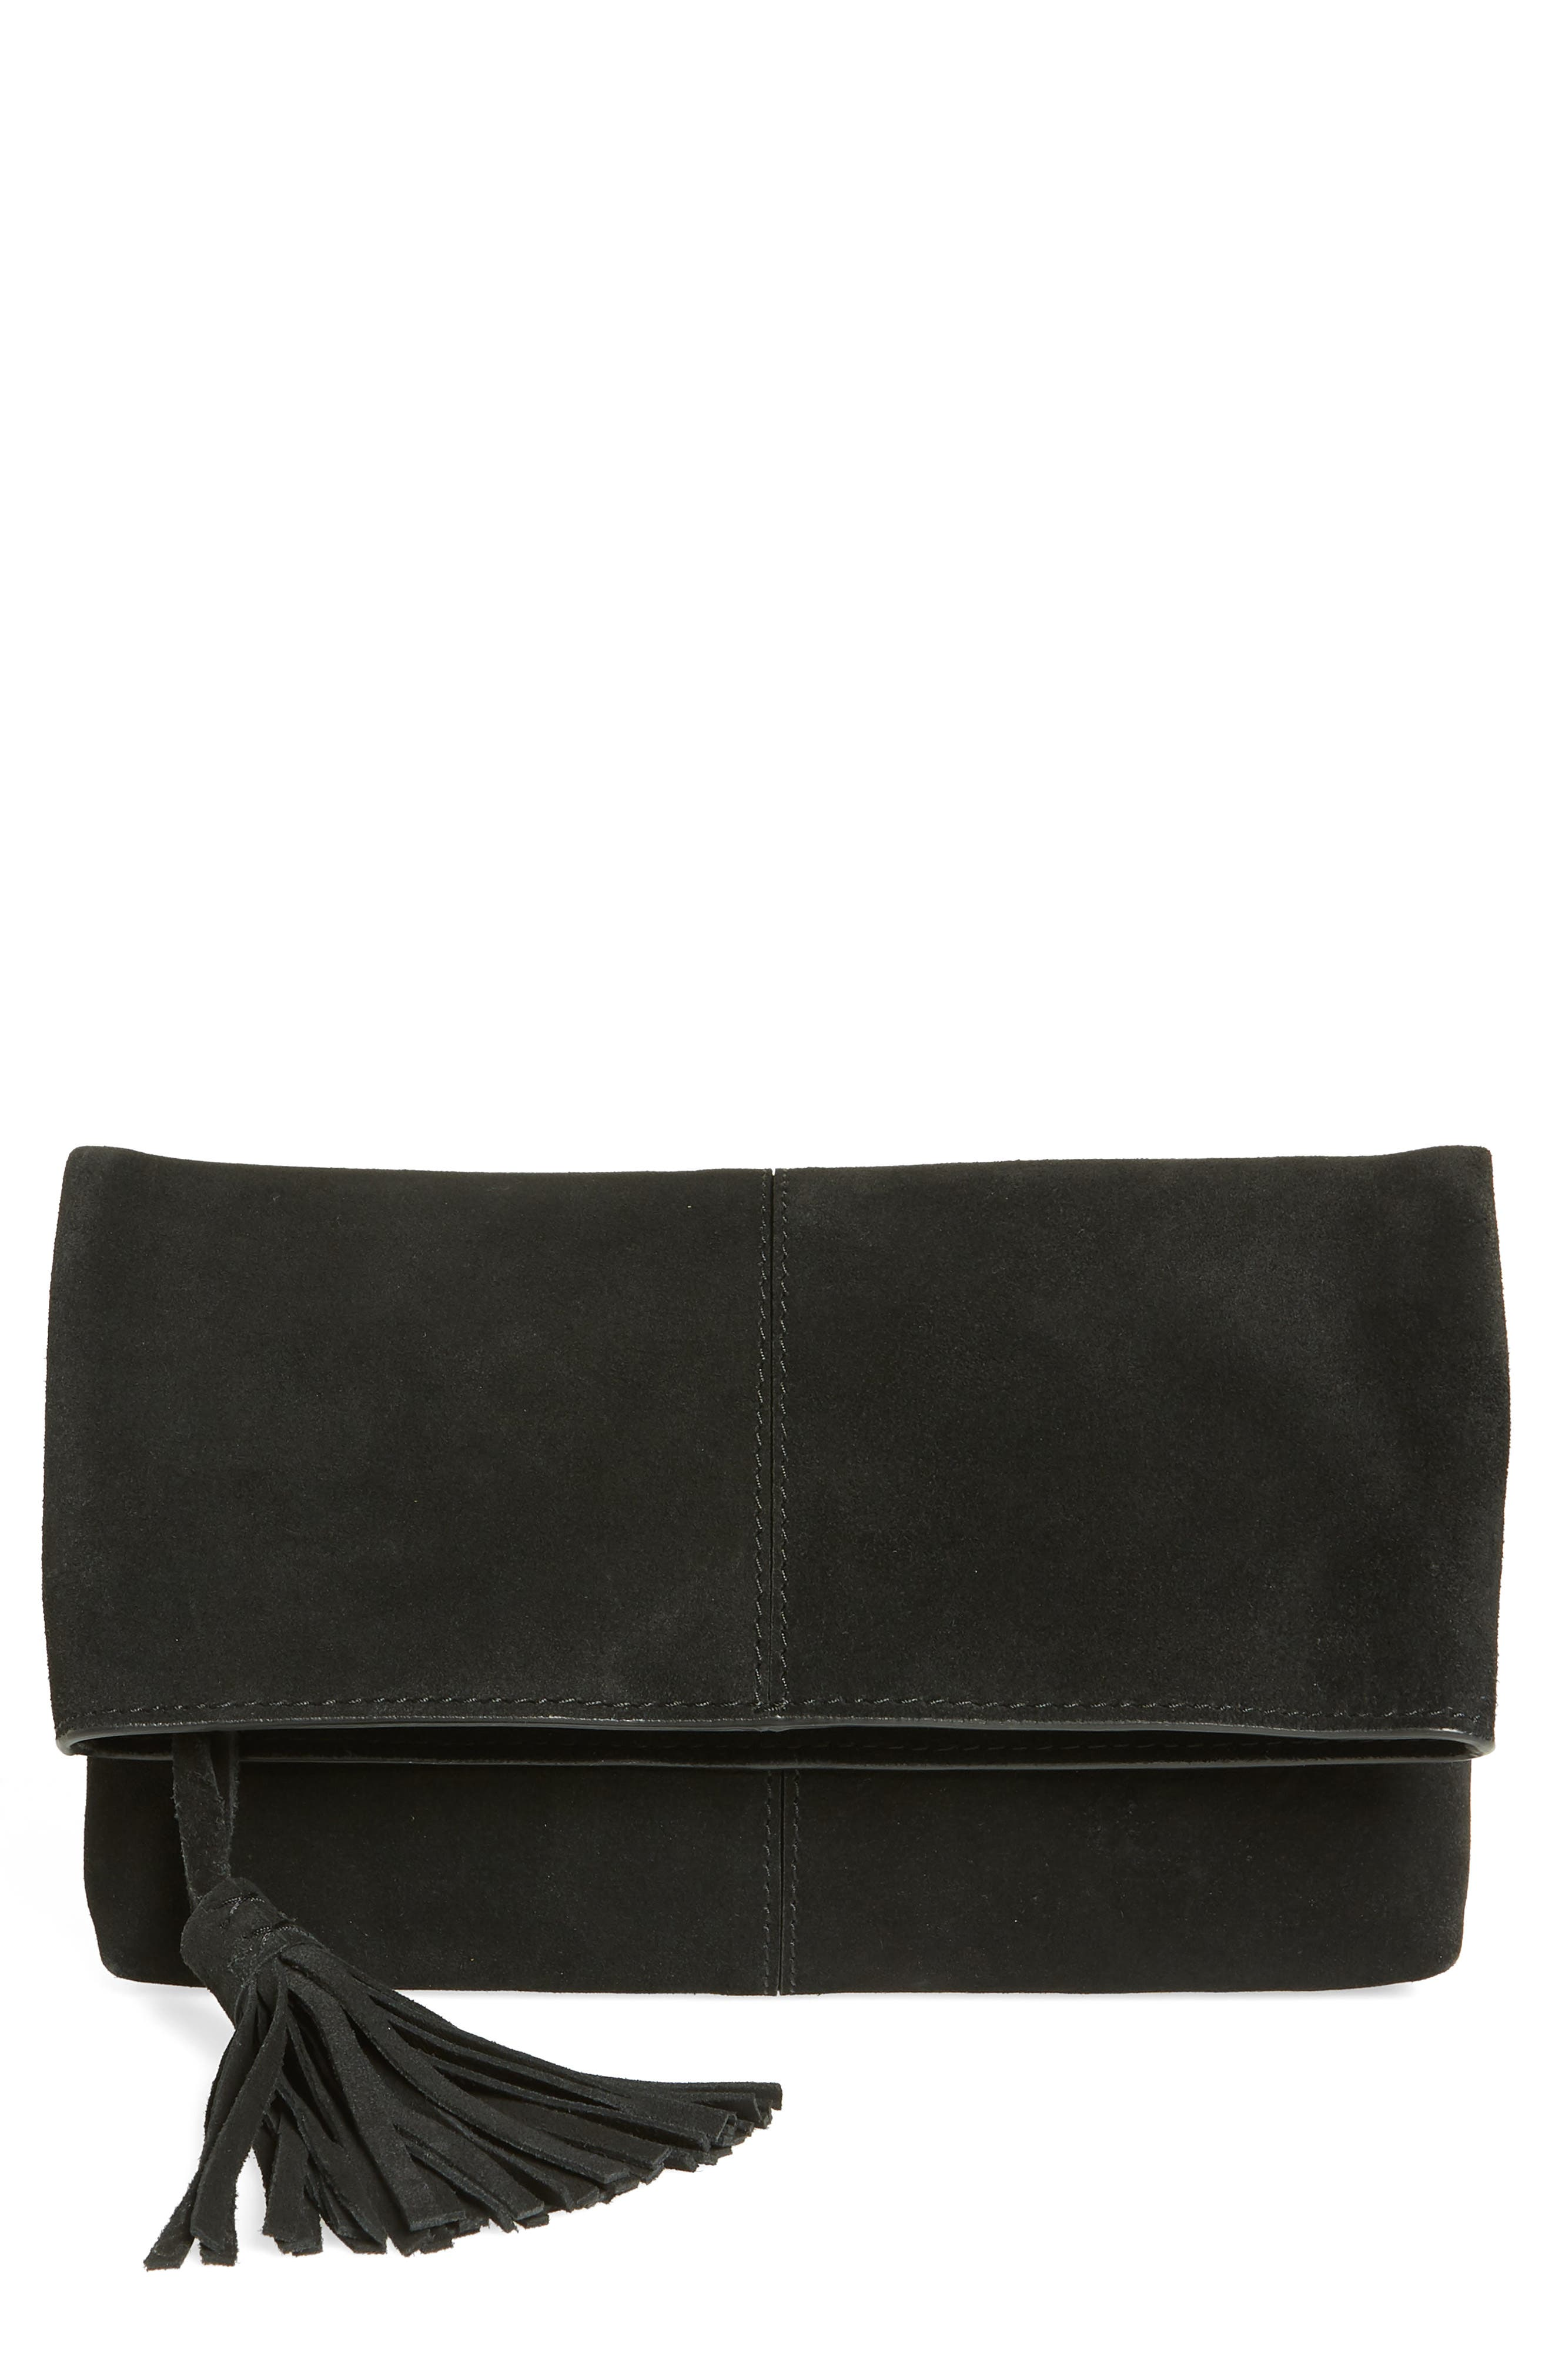 Suede Clutch,                             Main thumbnail 1, color,                             BLACK